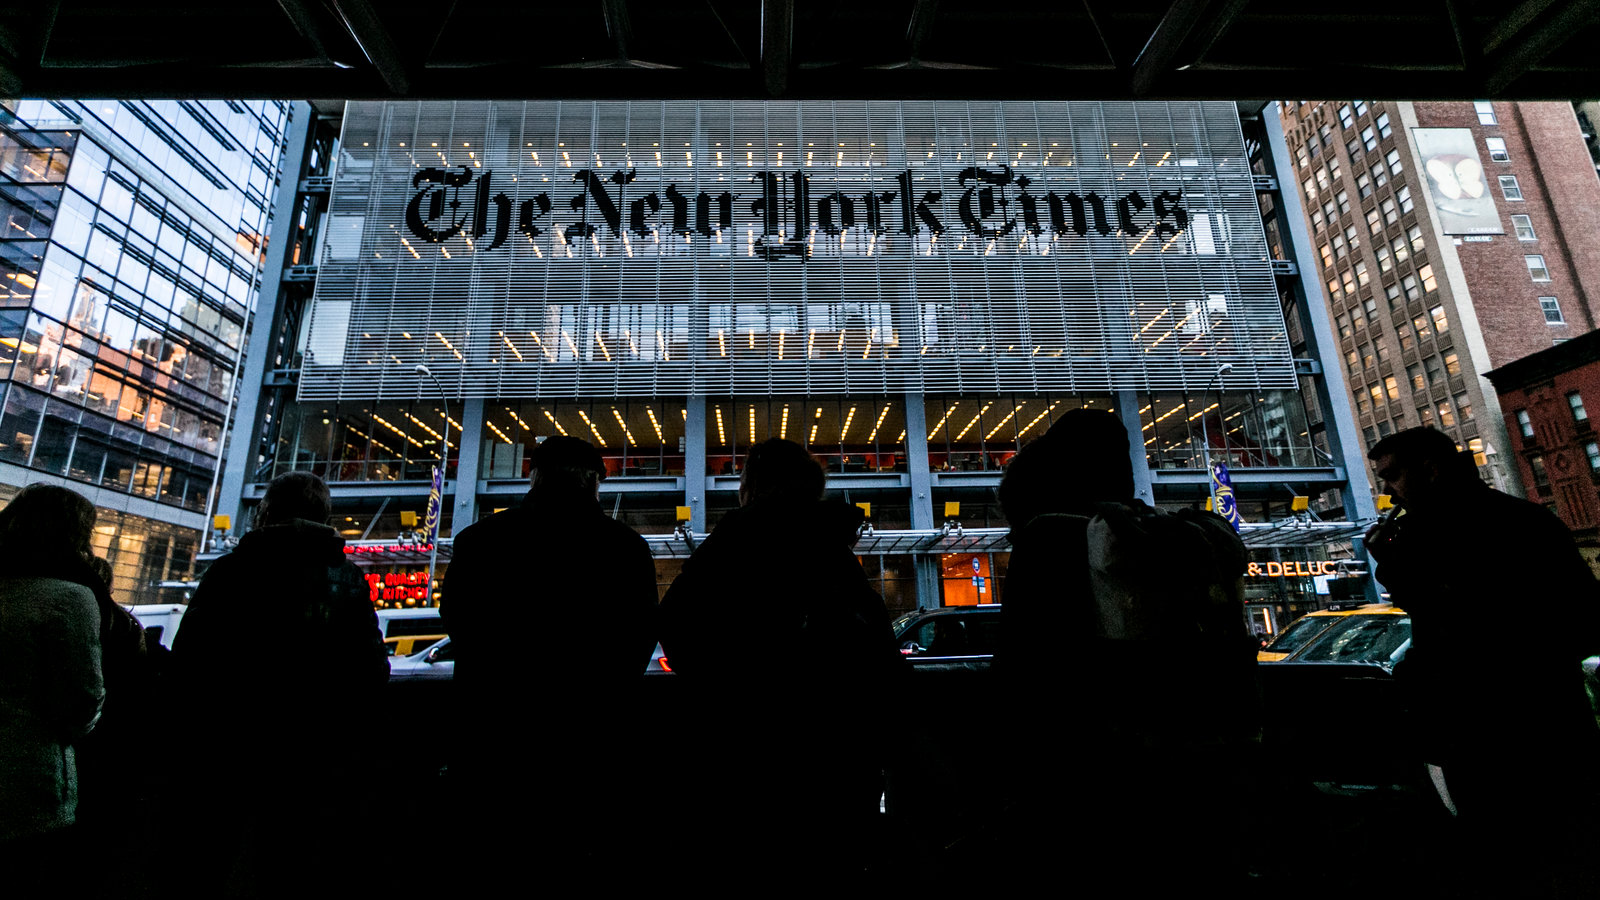 New York Times Co Advertising Drops As Turbulence Hits